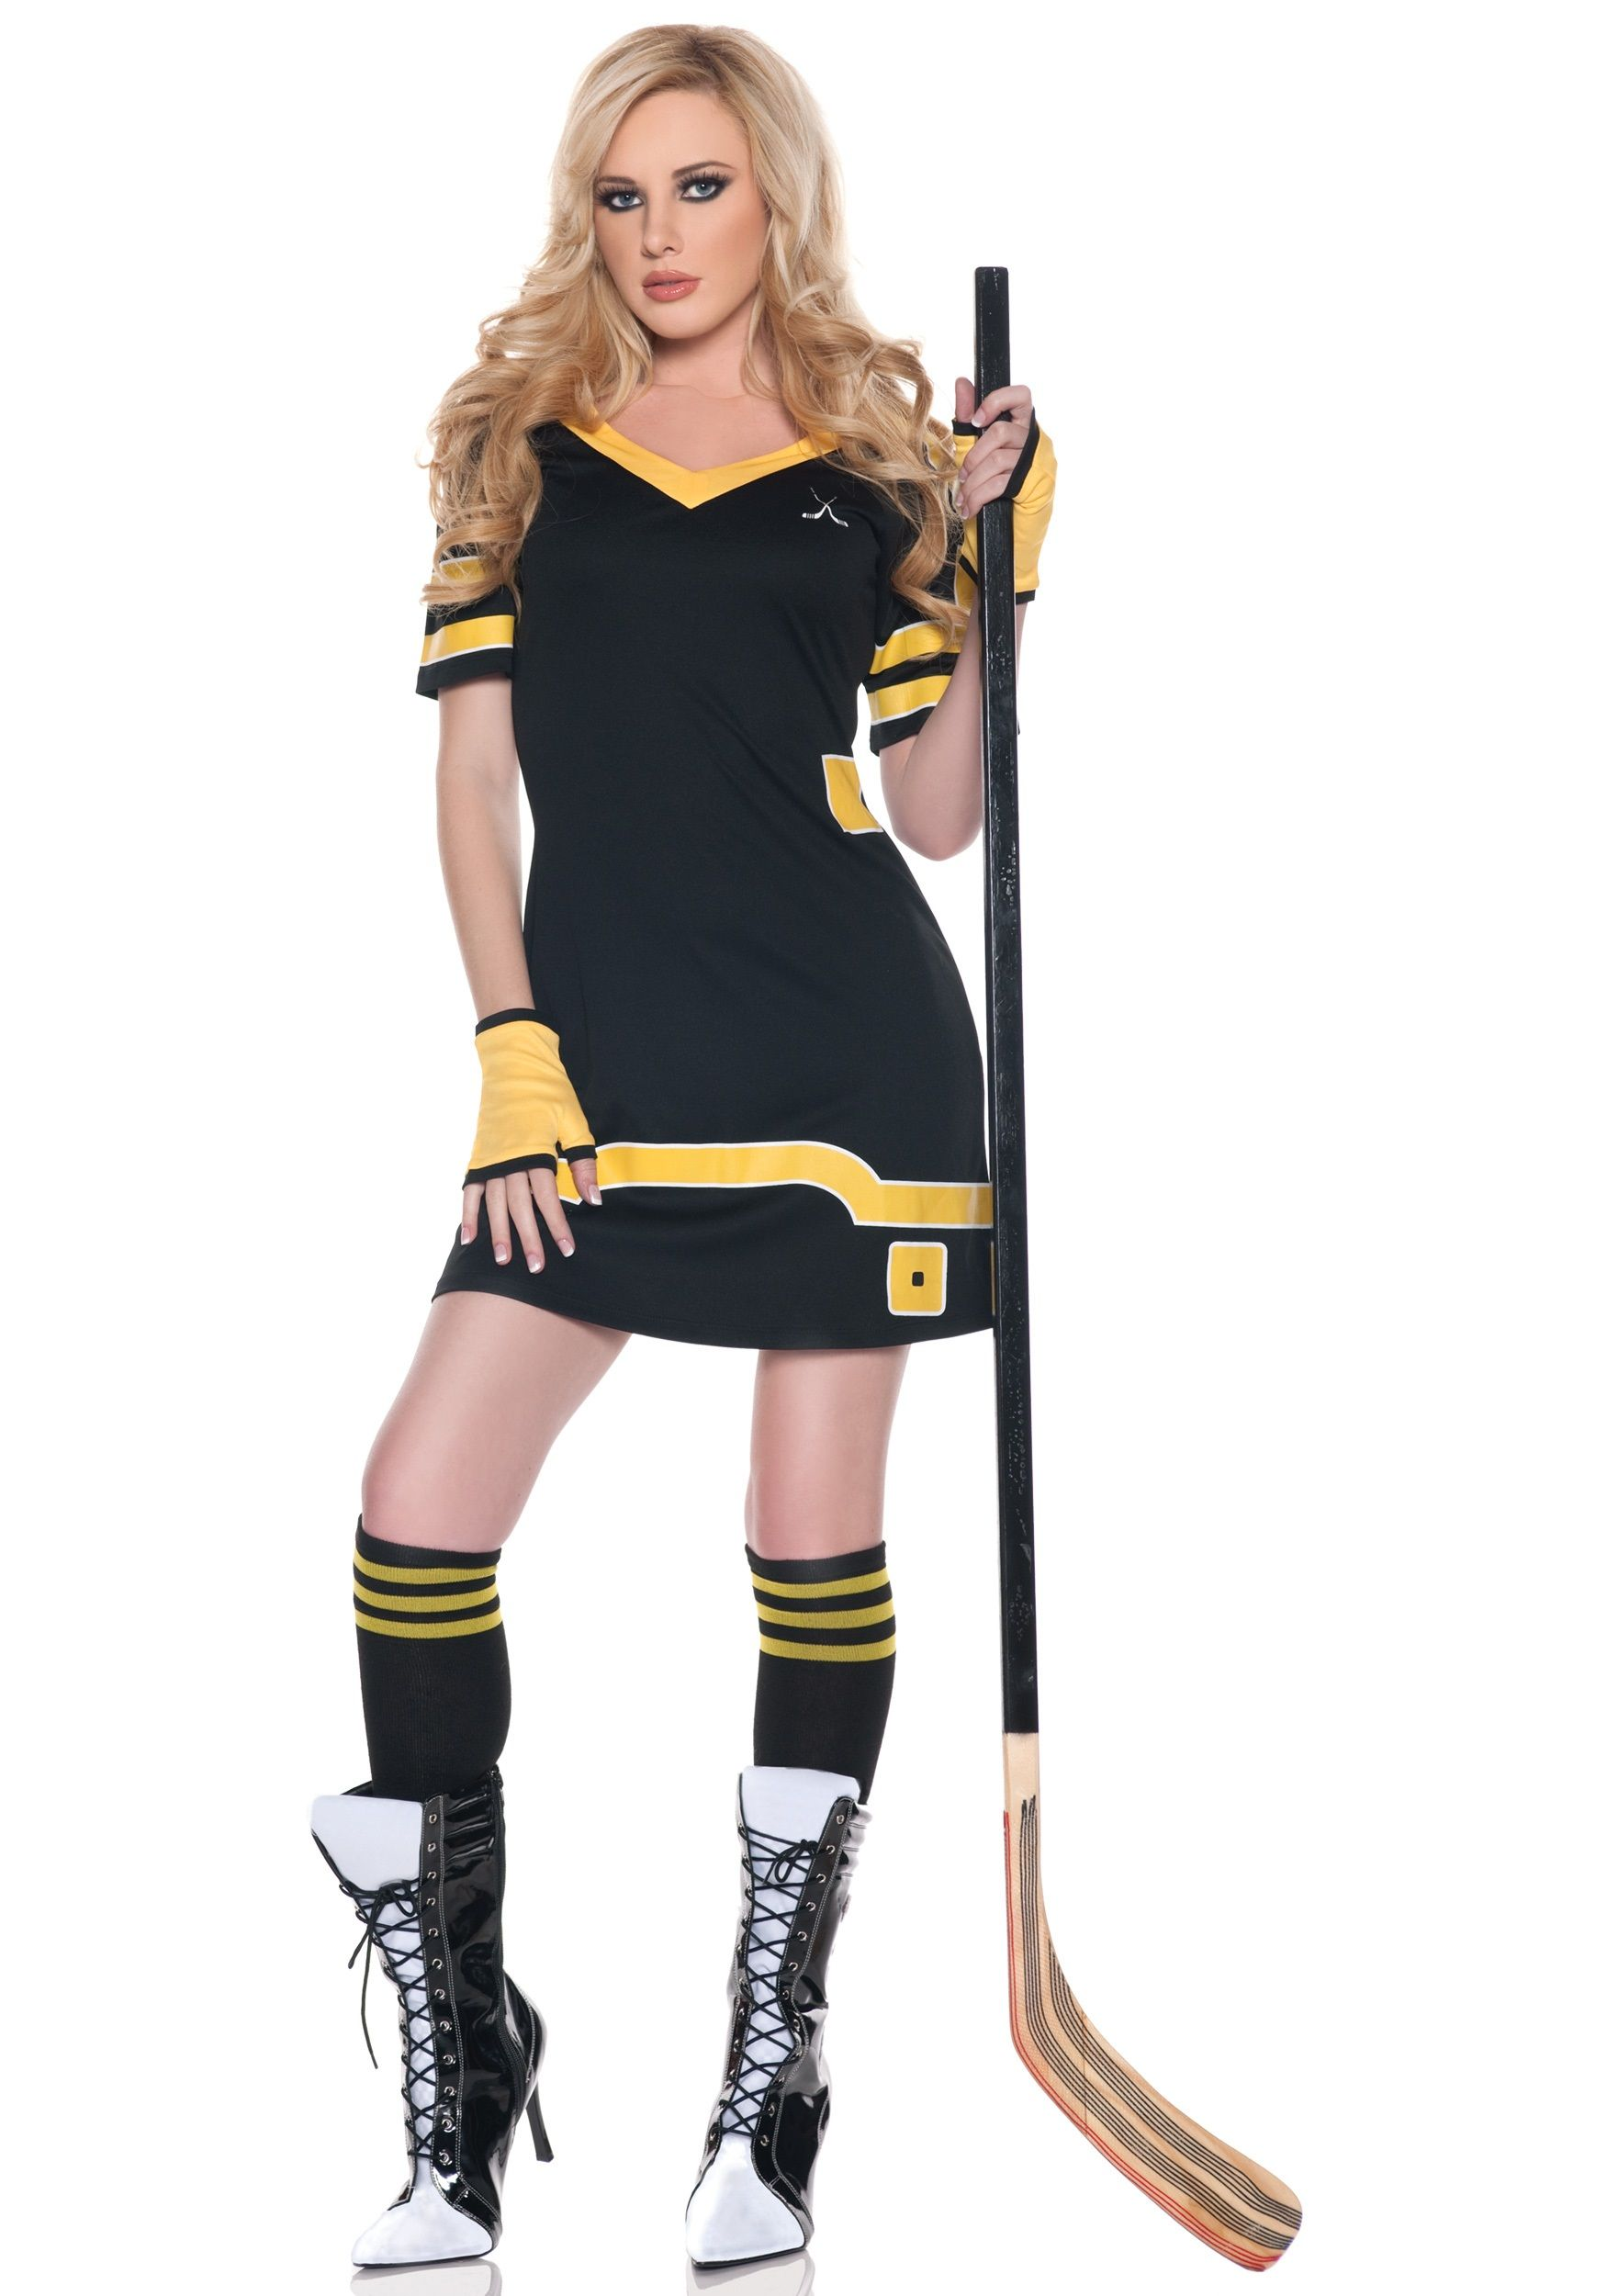 Sexy Hockey Player Costume | tiffany toth | Pinterest | Costumes